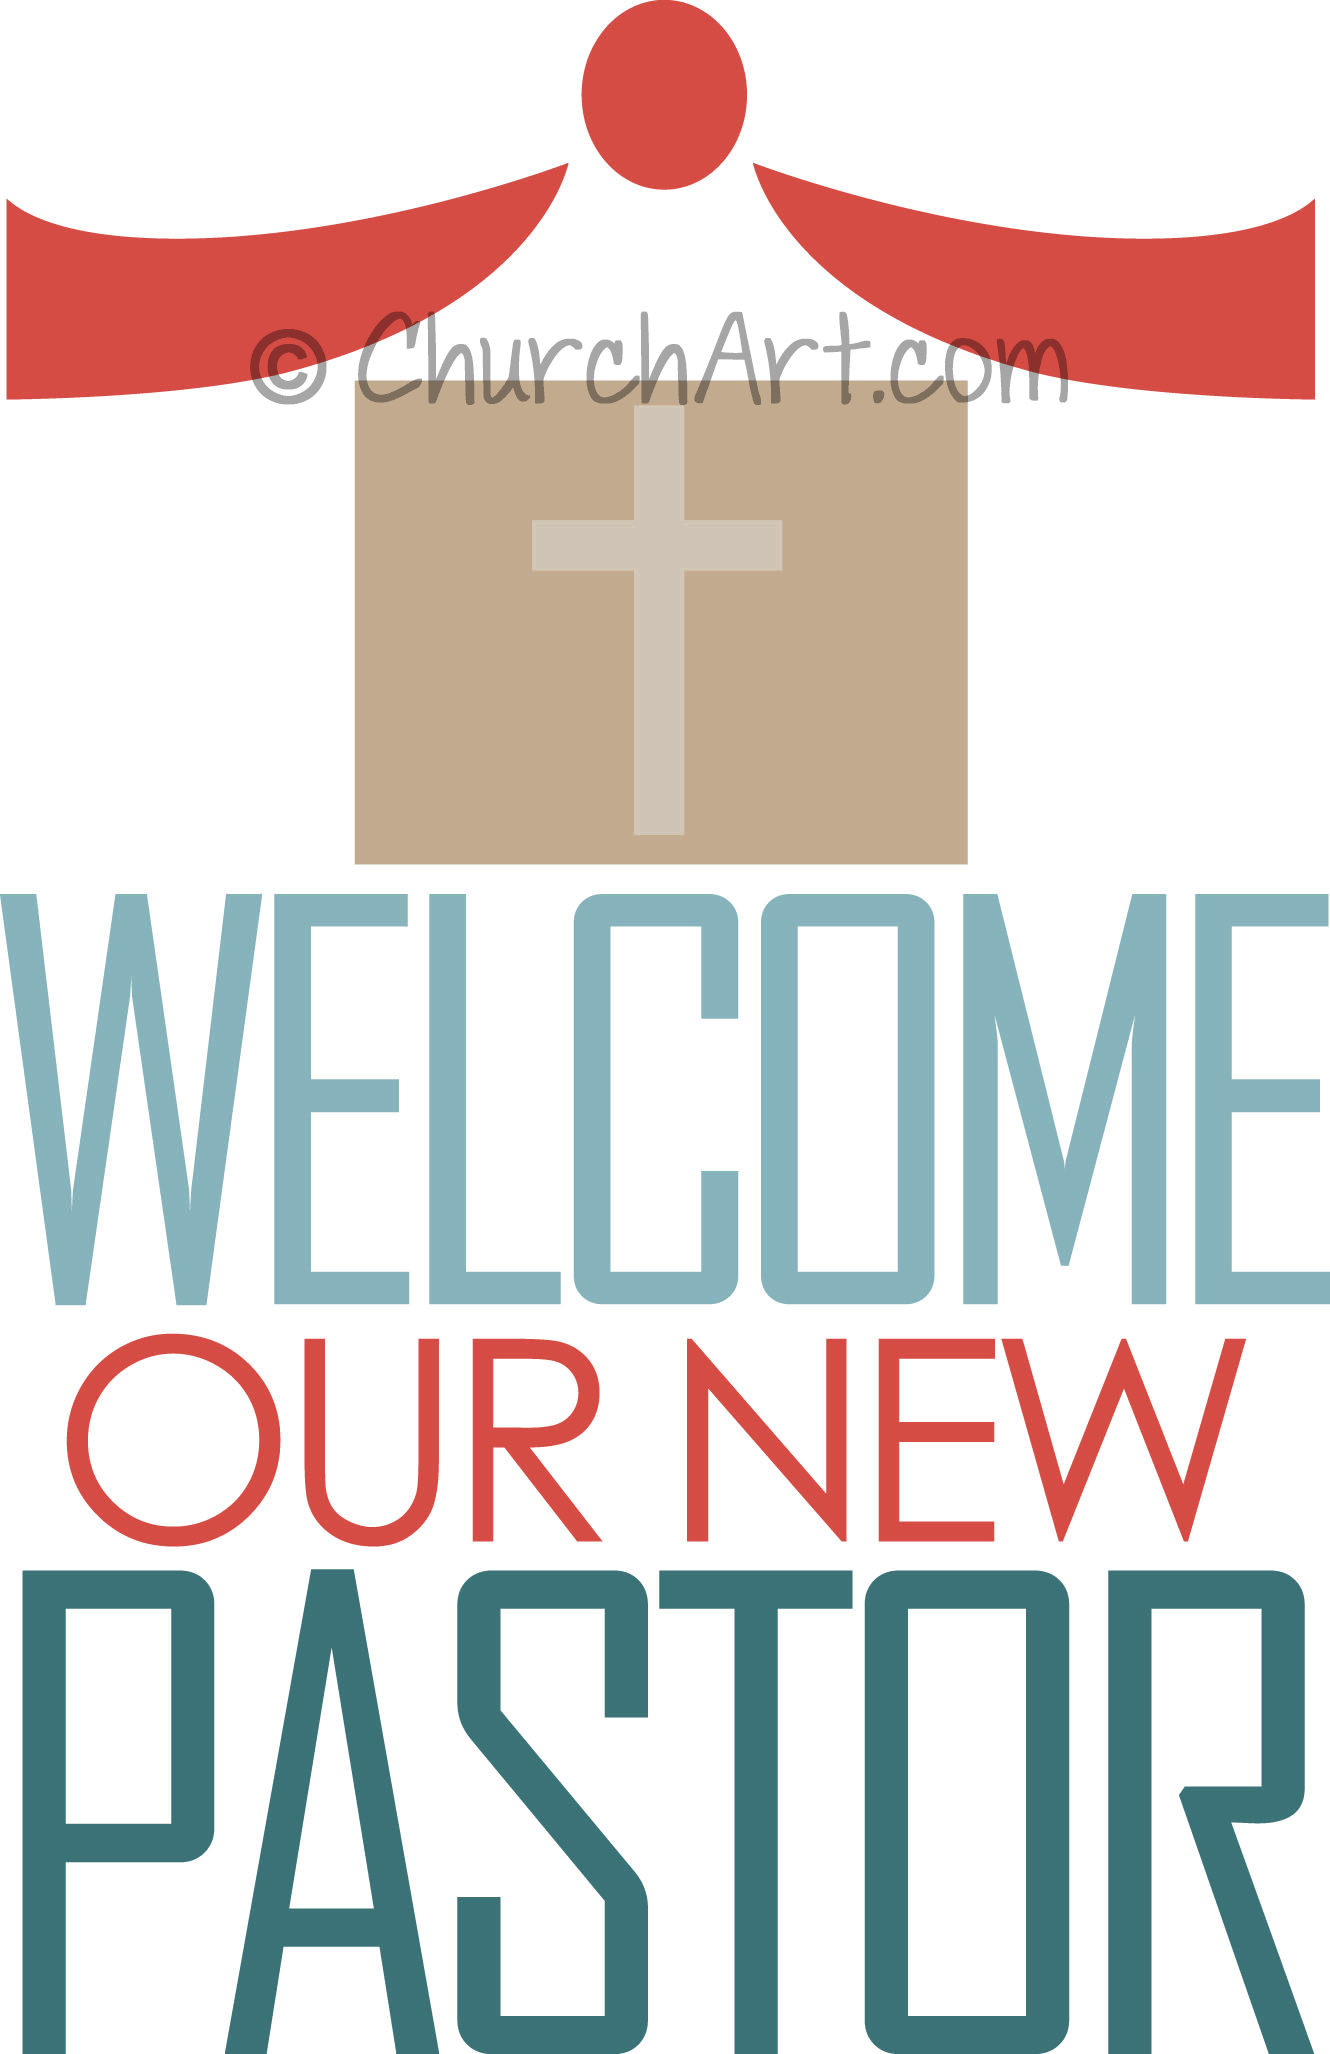 Clipart image with cross and pew to welcome a new pastor for church